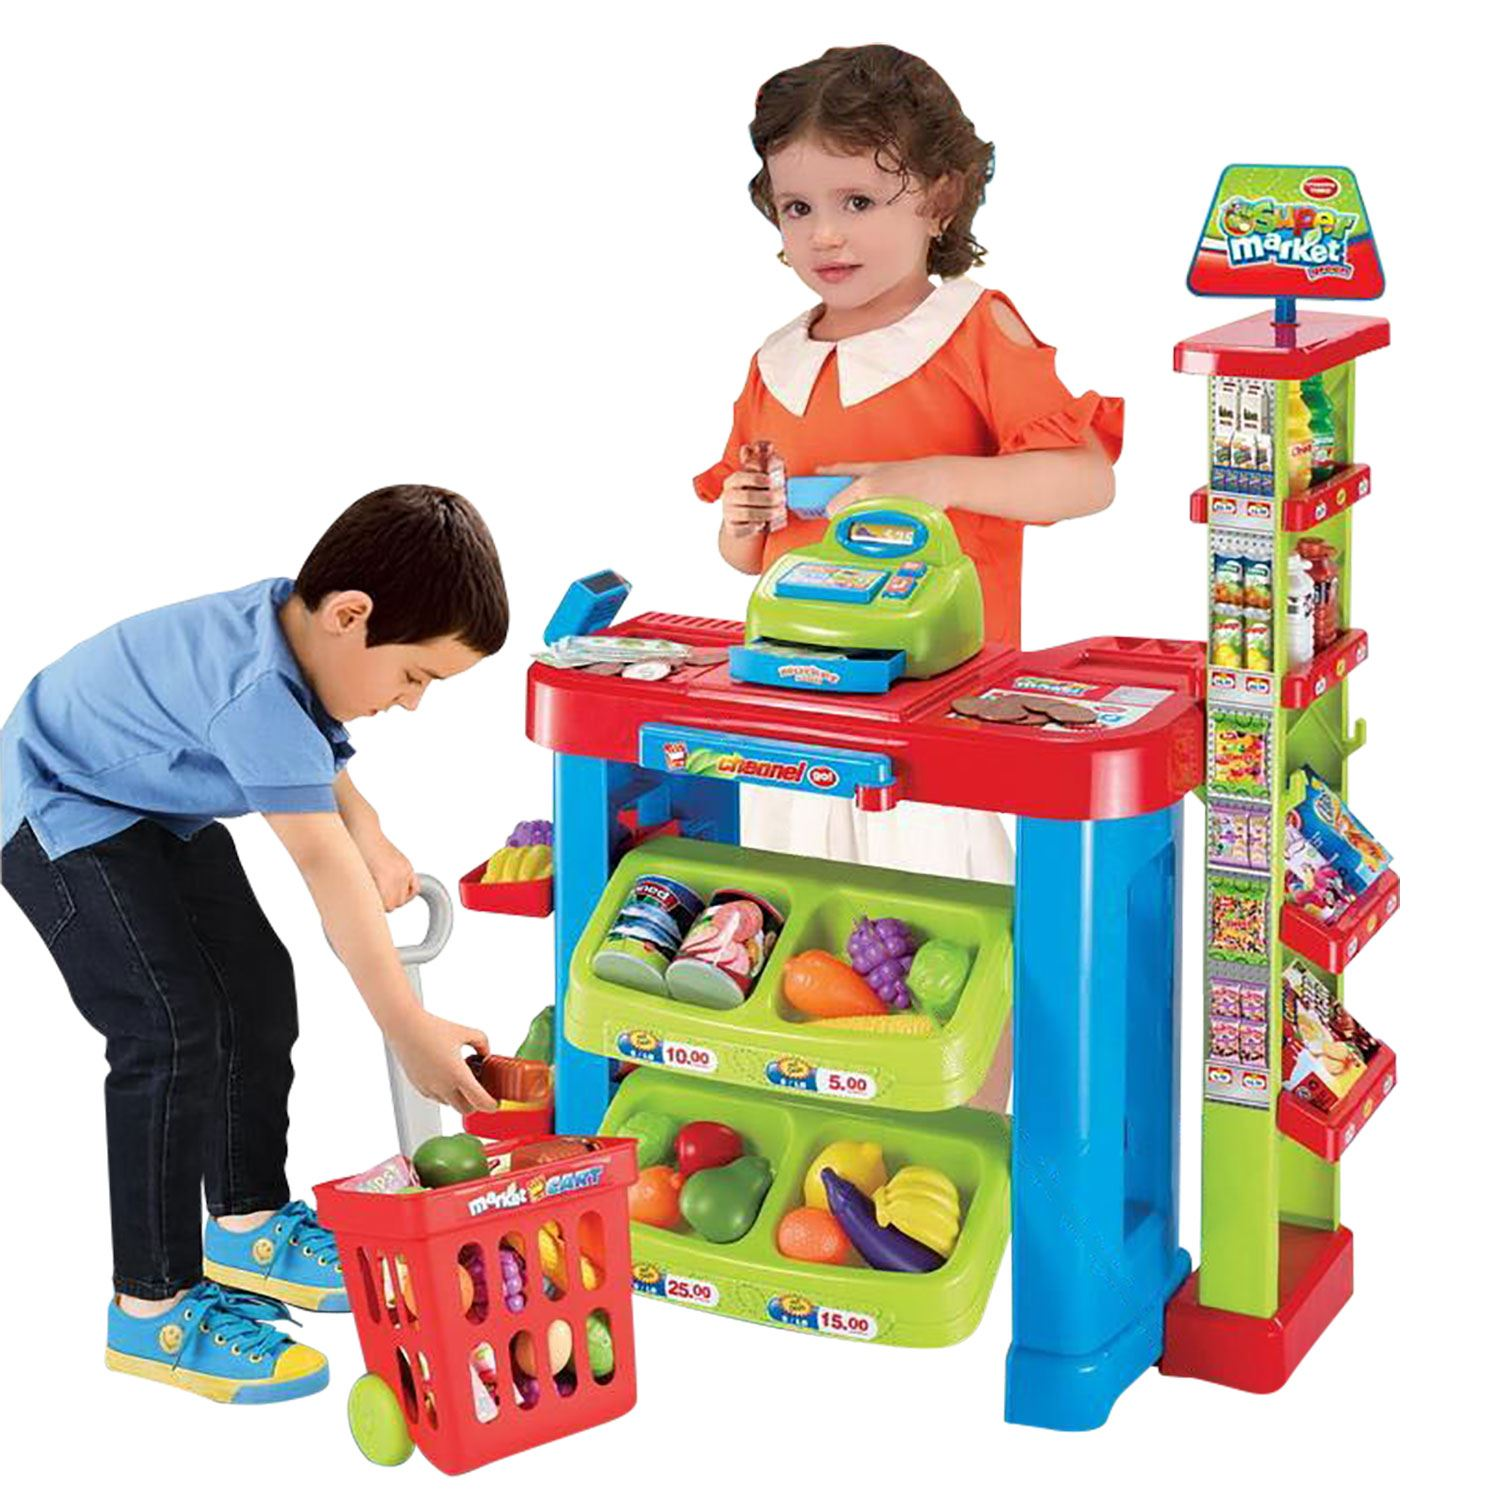 Children s Kids Power Tools Work Bench Kitchen Cooking Creative